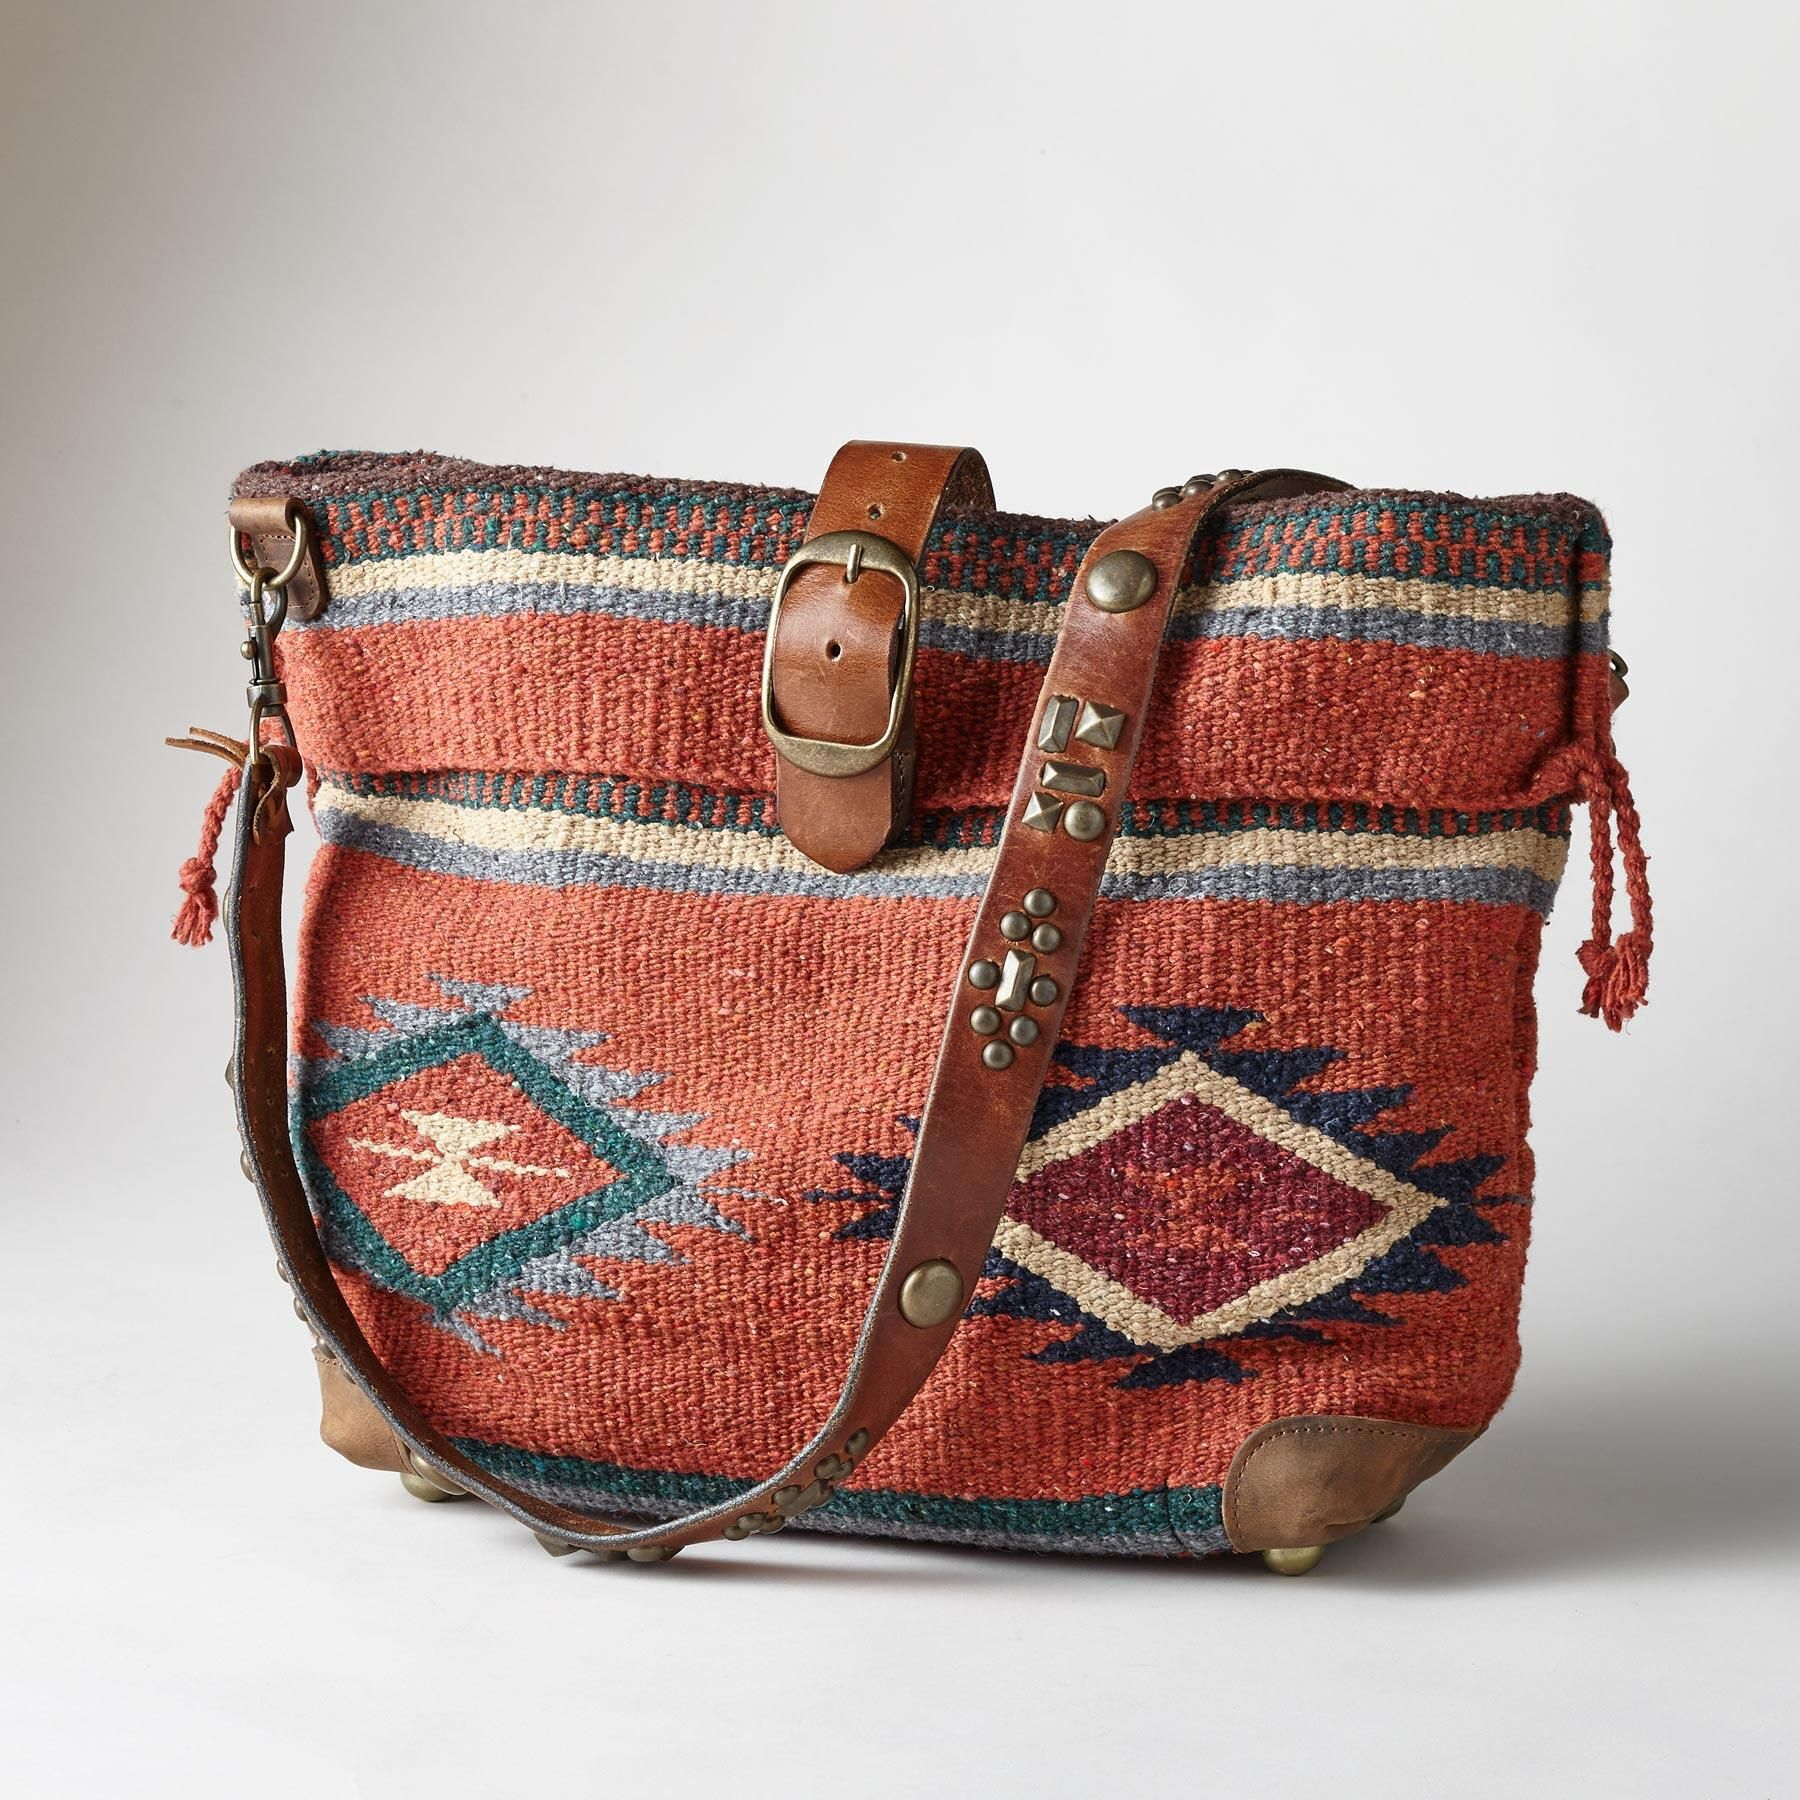 5310f5d61 Hold history in your hands with our thought-fully crafted, crossbody  blanket bag. | All About the Bag | Bags, Carpet bag, Purses